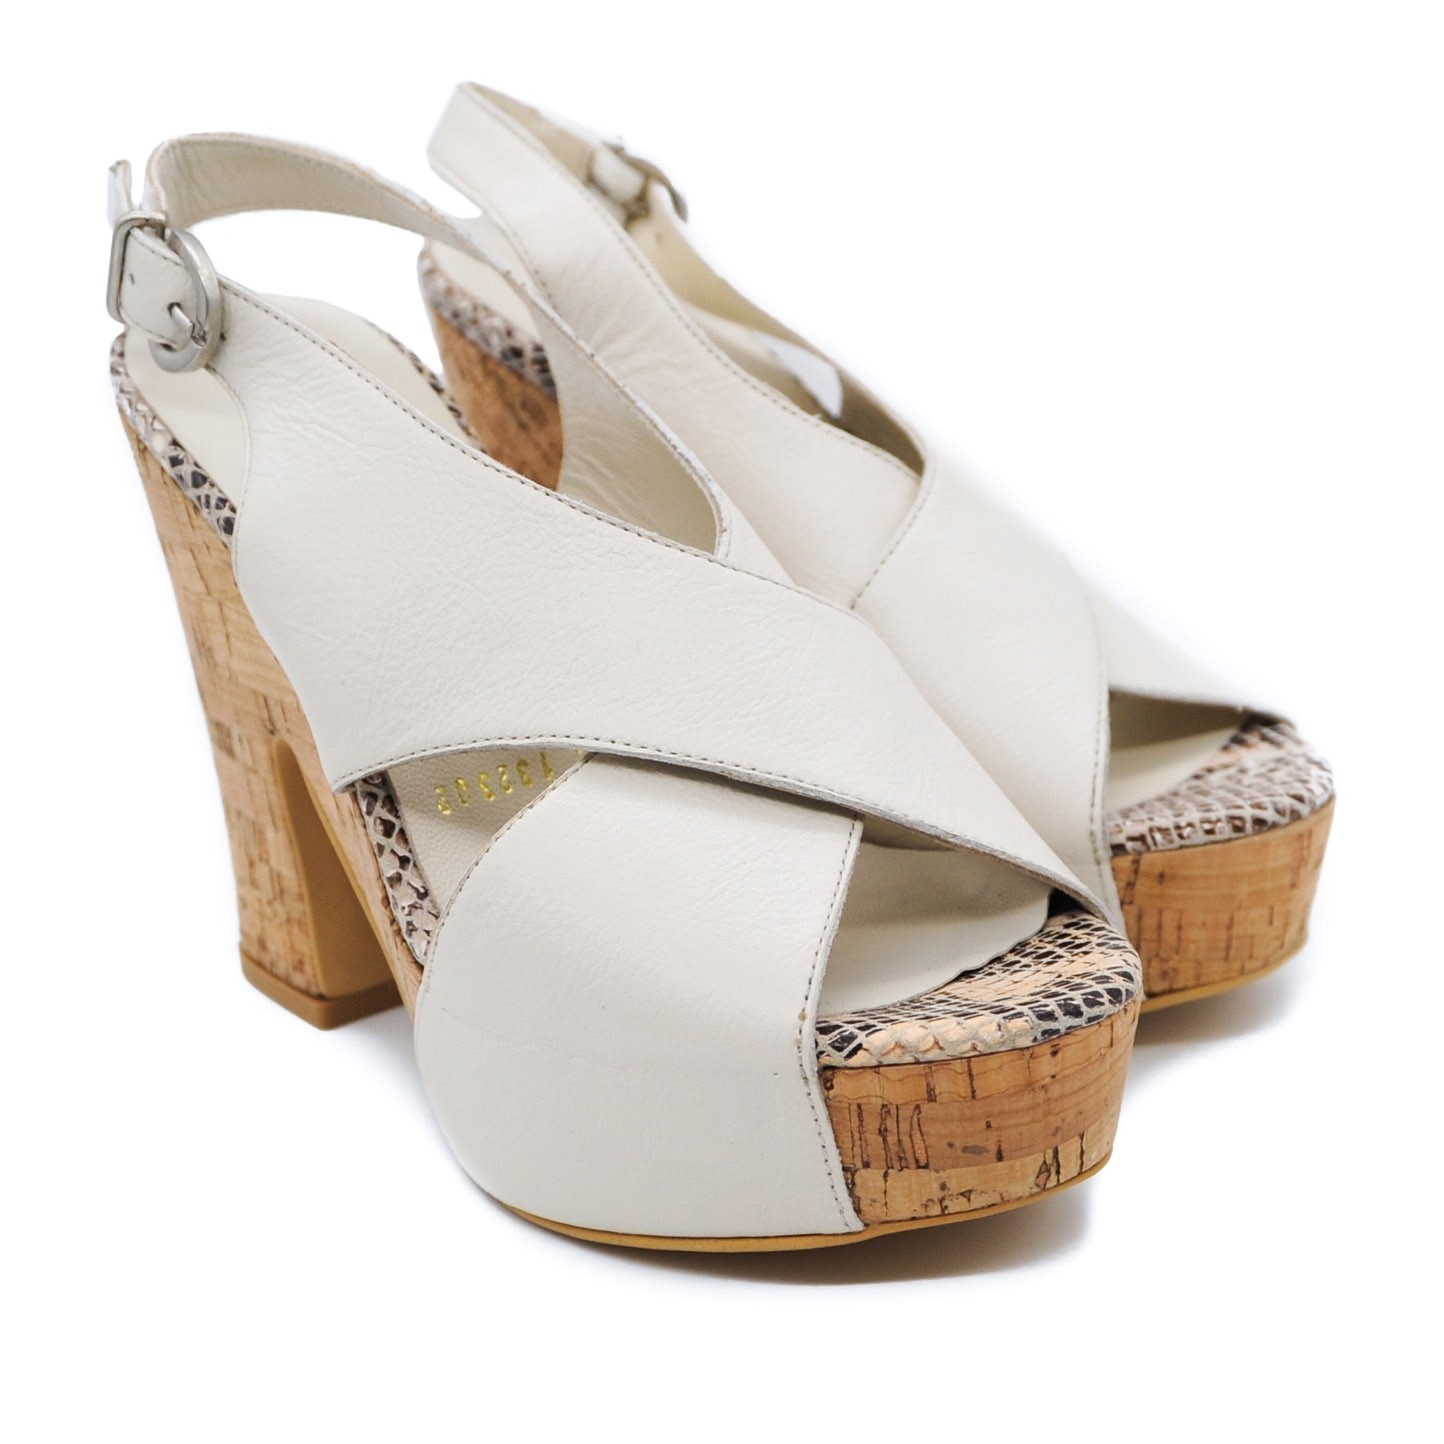 Pegia Beige Platform Leather Strapped Shoes with Cork High Heels and Wedge